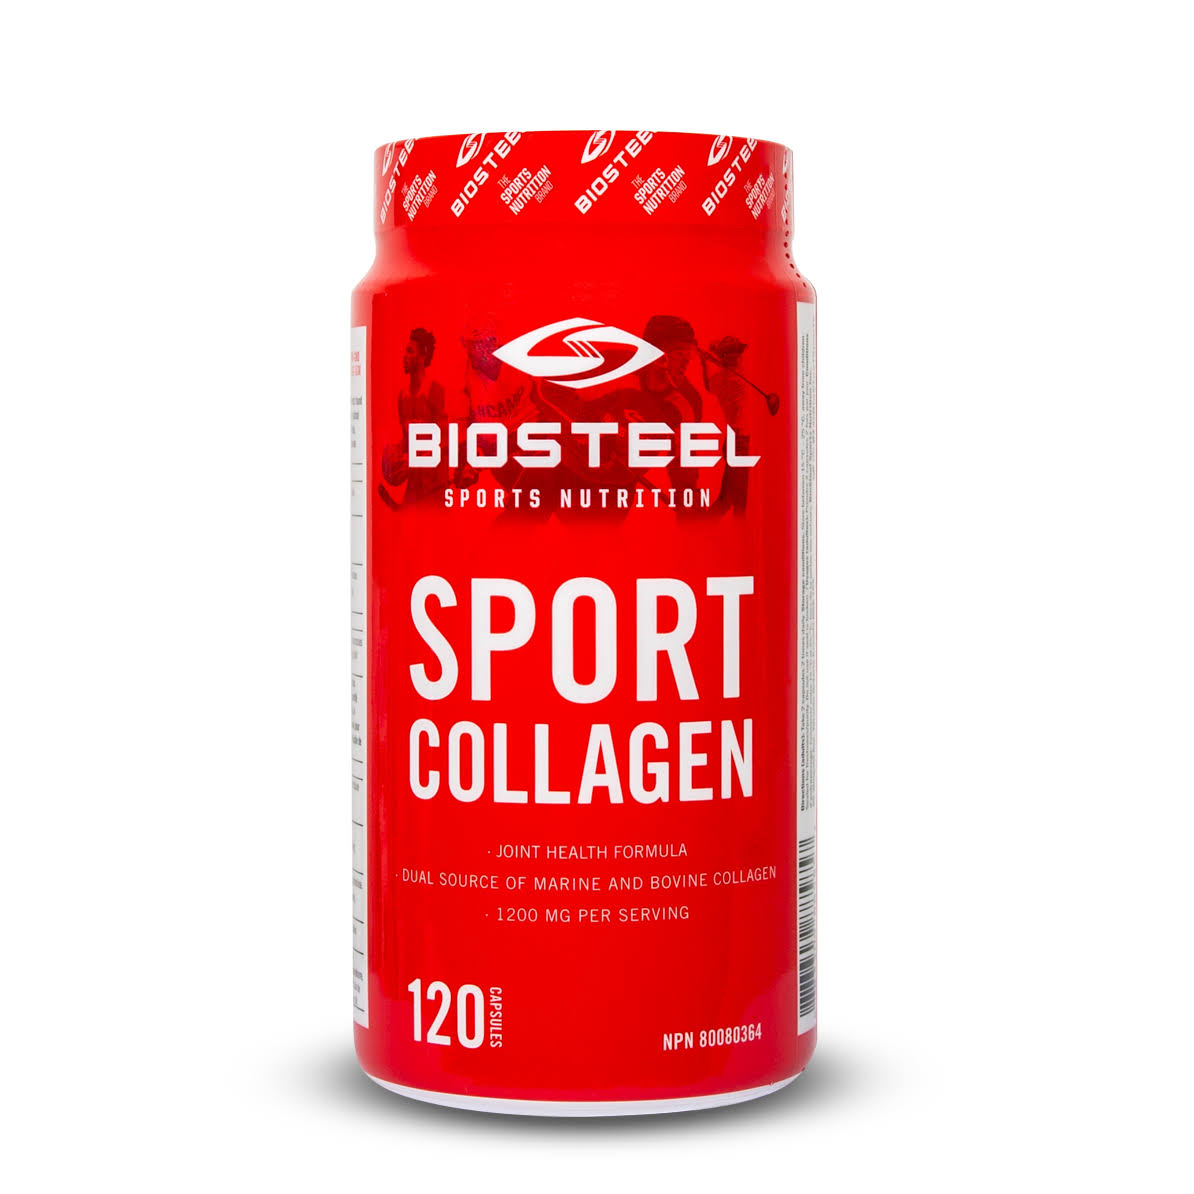 BioSteel Sport Collagen Capsules for Joint Health - 120ct